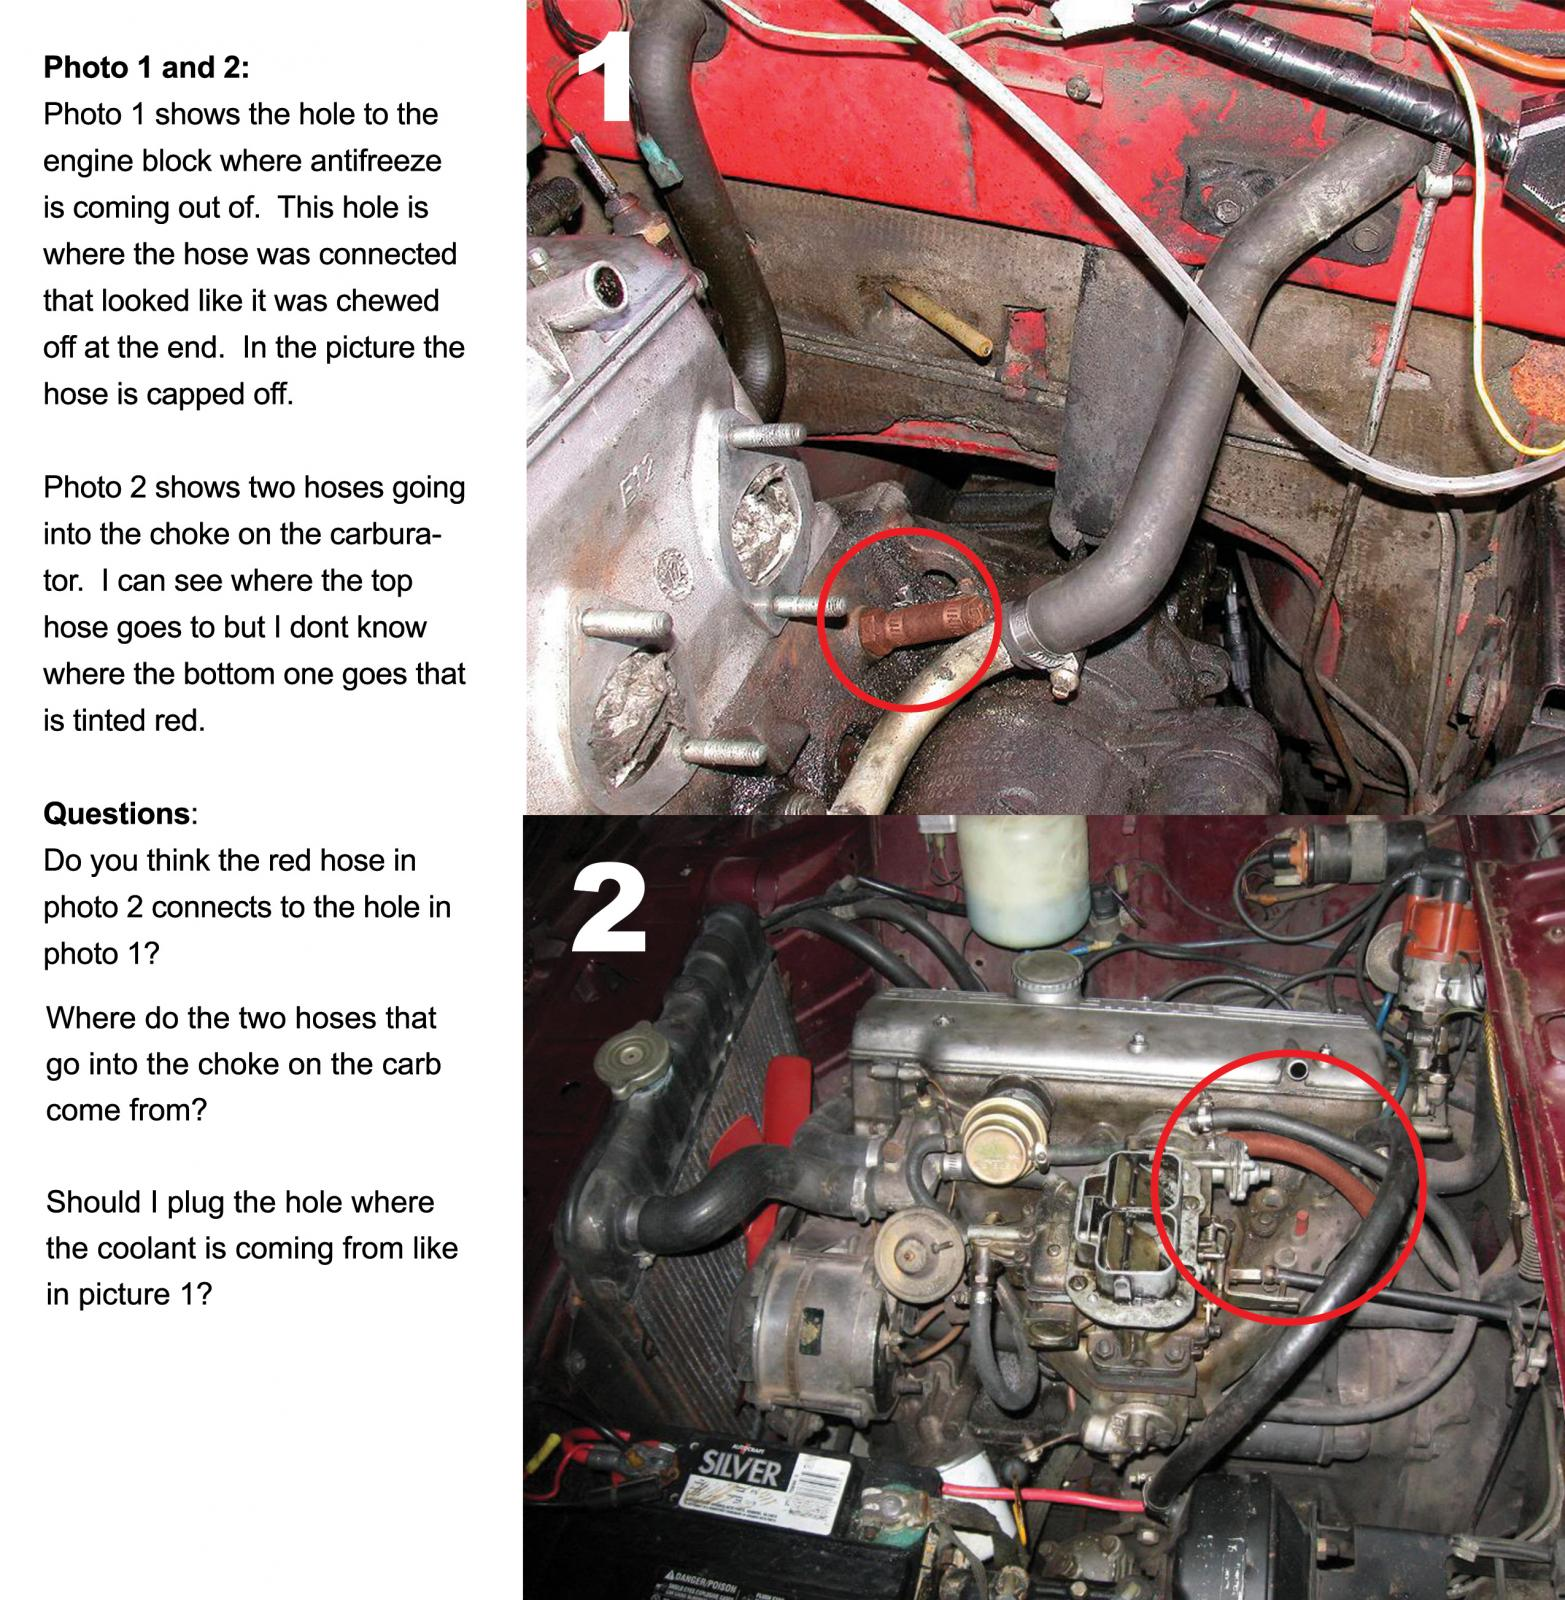 Weber 32 36 Fuel And Water Hose Questions Bmw 2002 General Engine Coolant Post 49668 0 73572400 1449502669 Thumbj